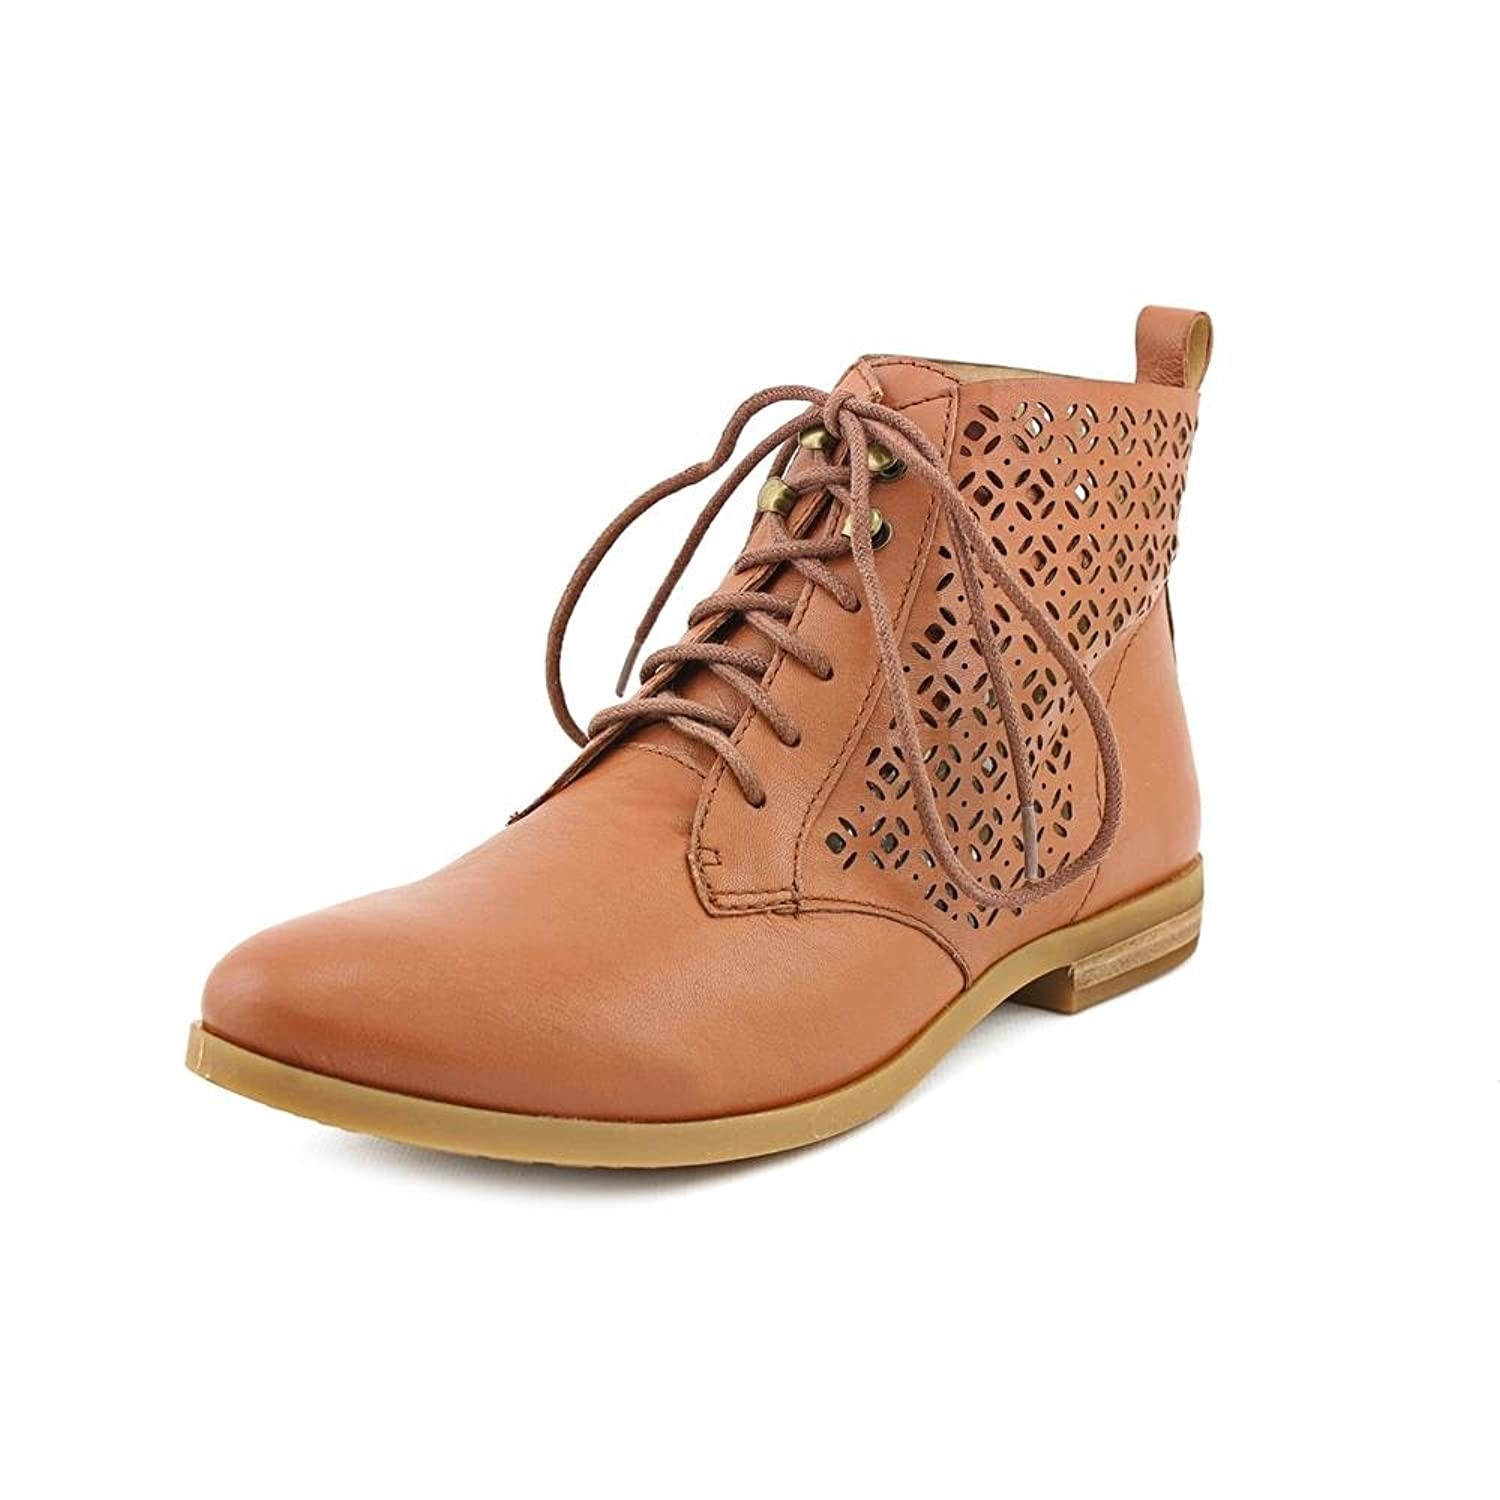 Lucky Brand Womens Hirro Leather Oxford Ankle Boots